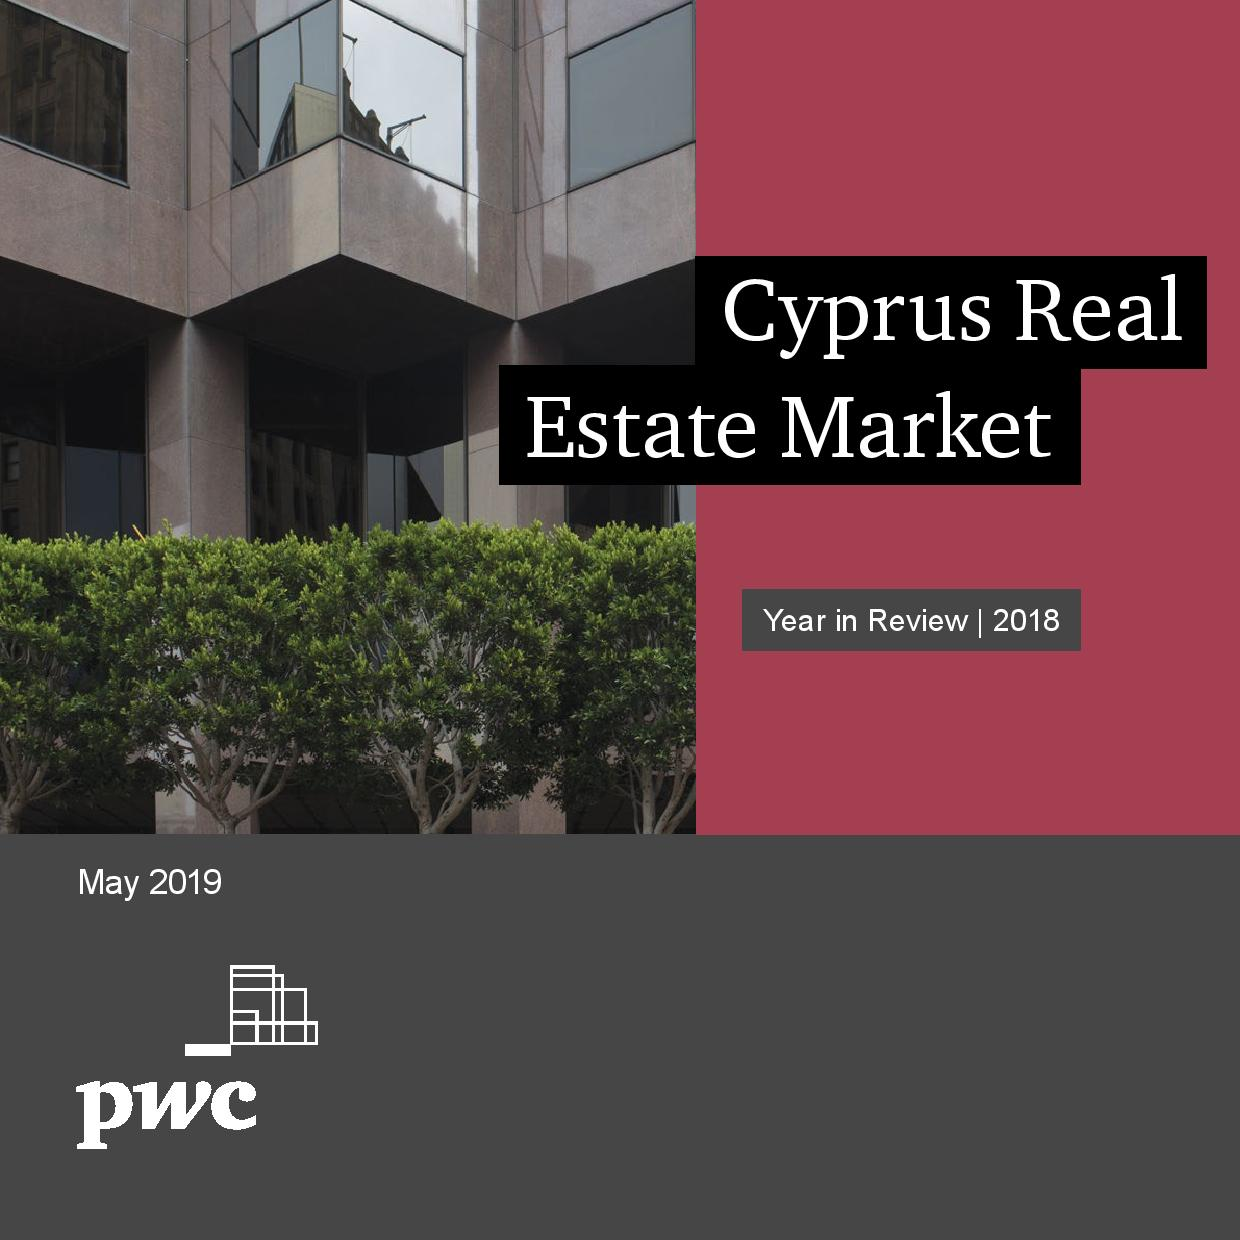 PwC: Cyprus Real Estate Market - Year in Review: 2018